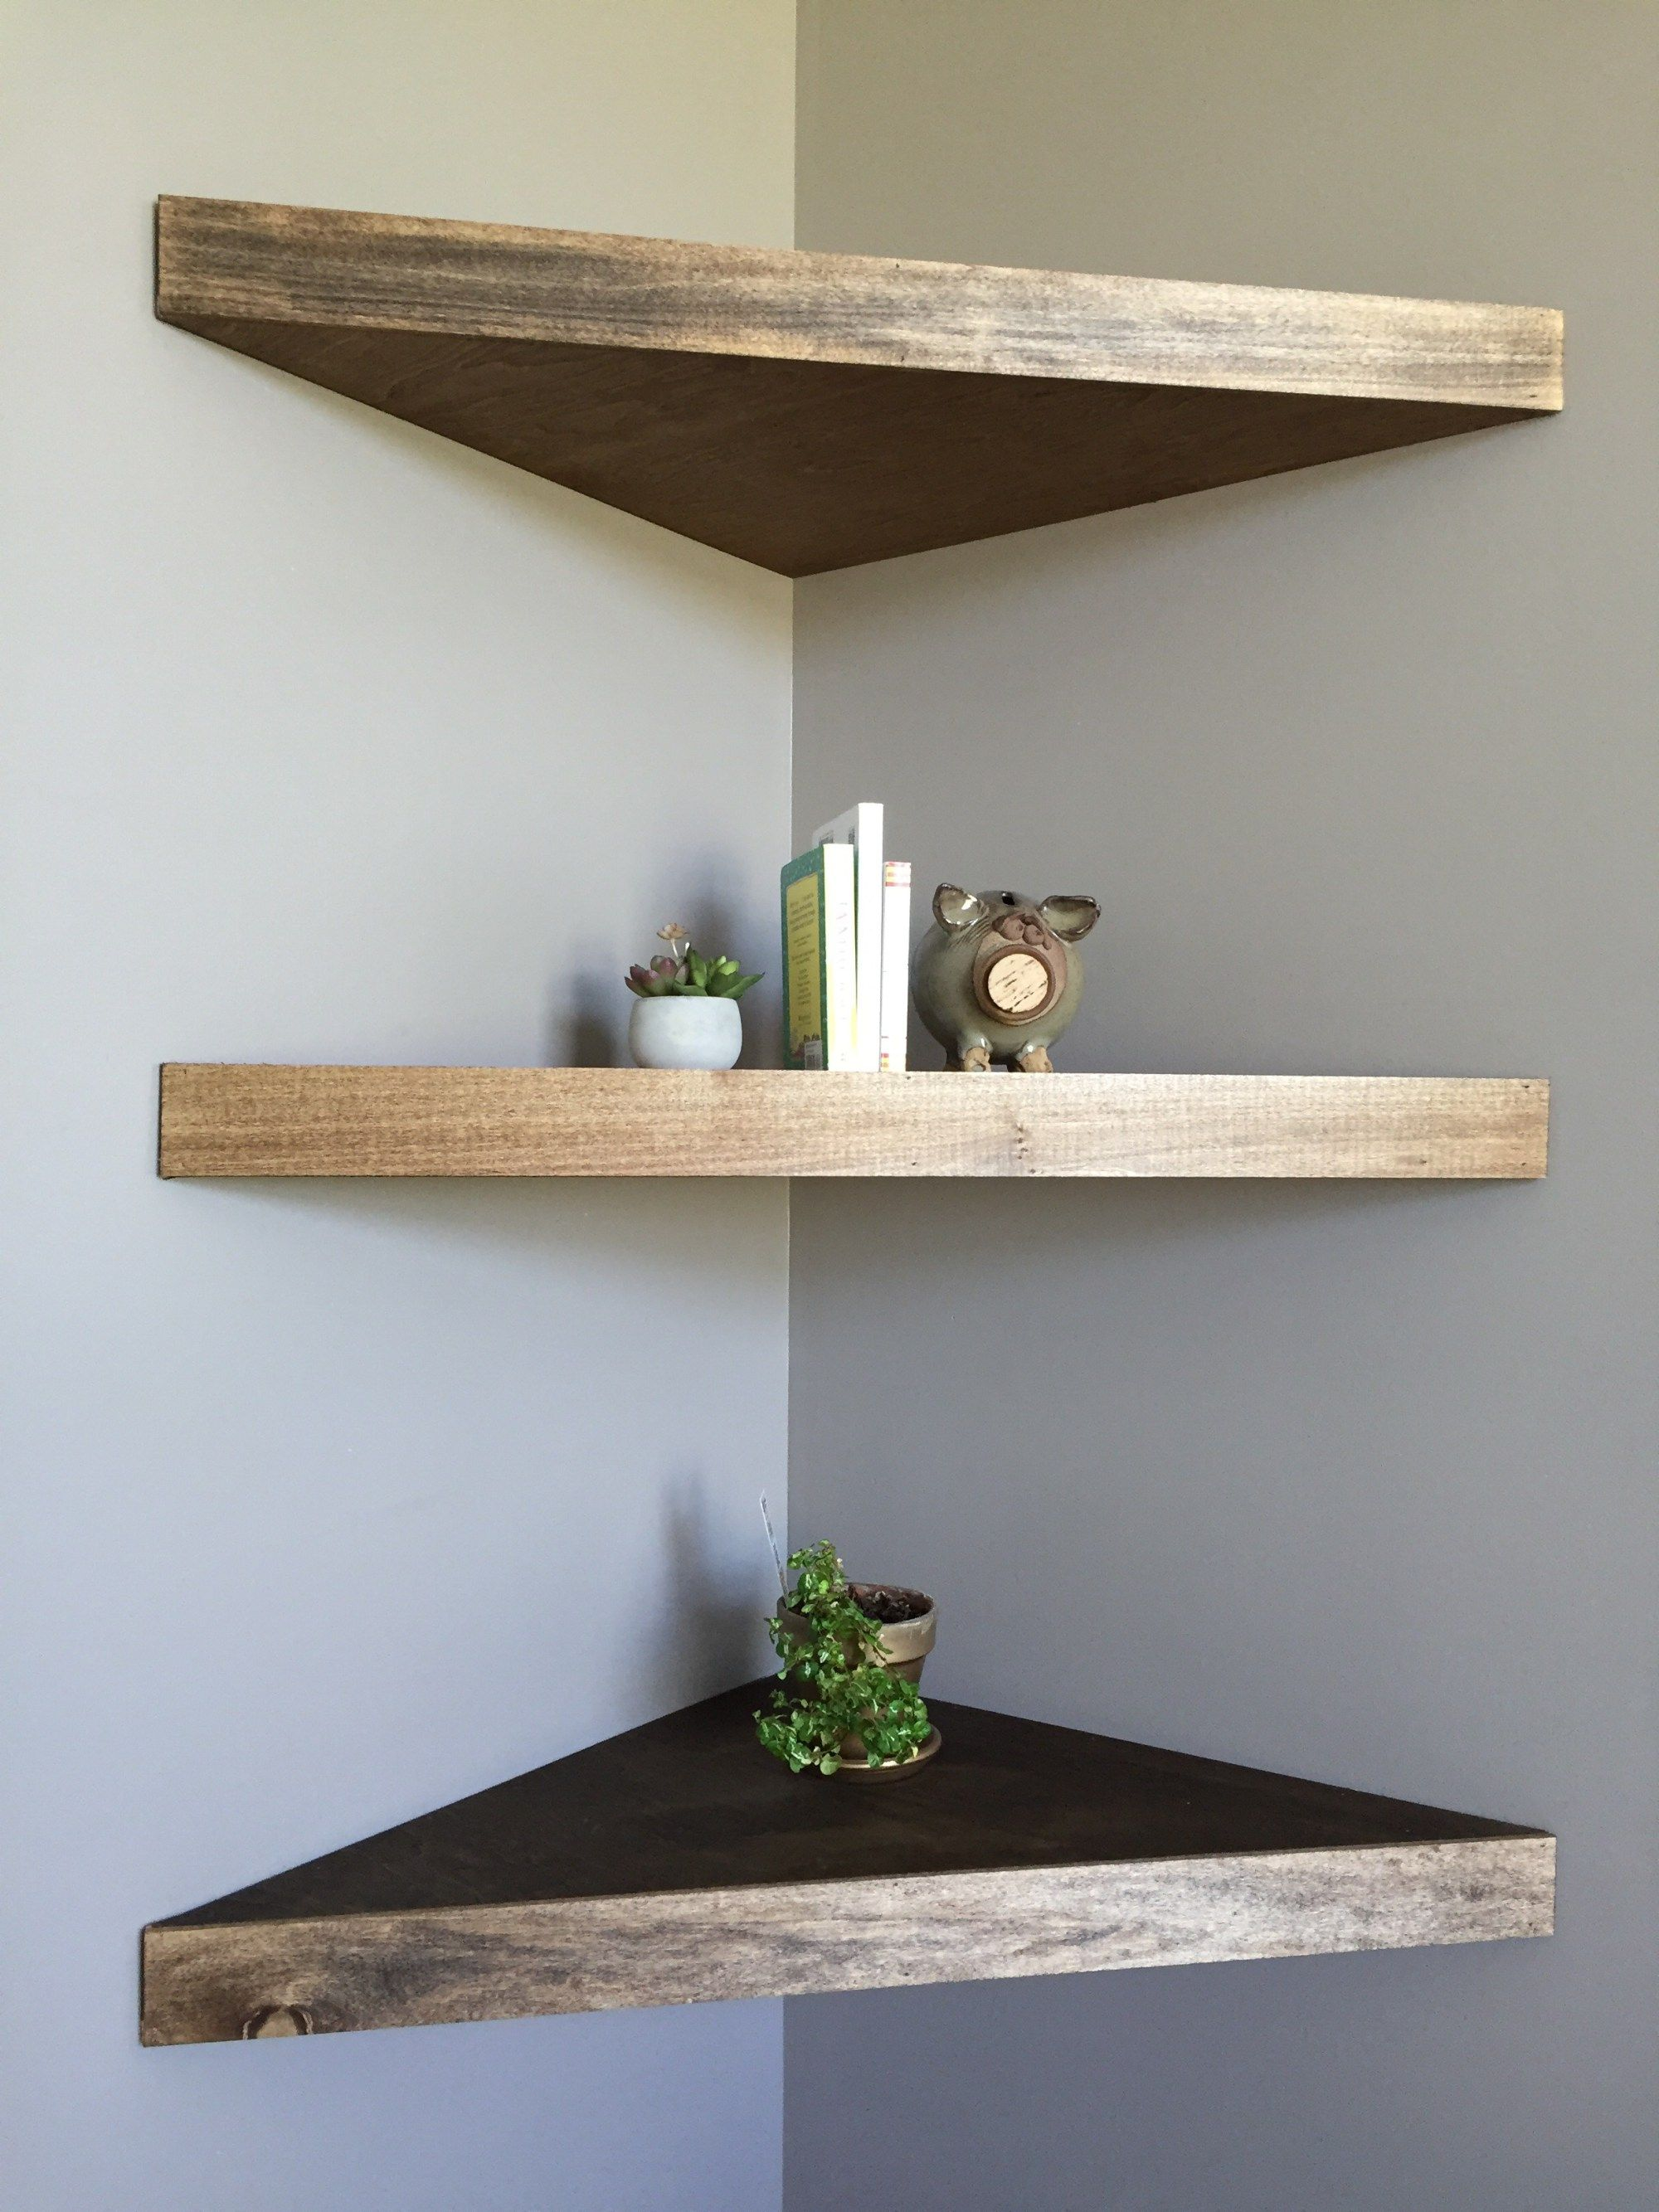 Diy Floating Corner Shelves Wood Corner Shelves Floating Shelves Diy Floating Shelves Bathroom